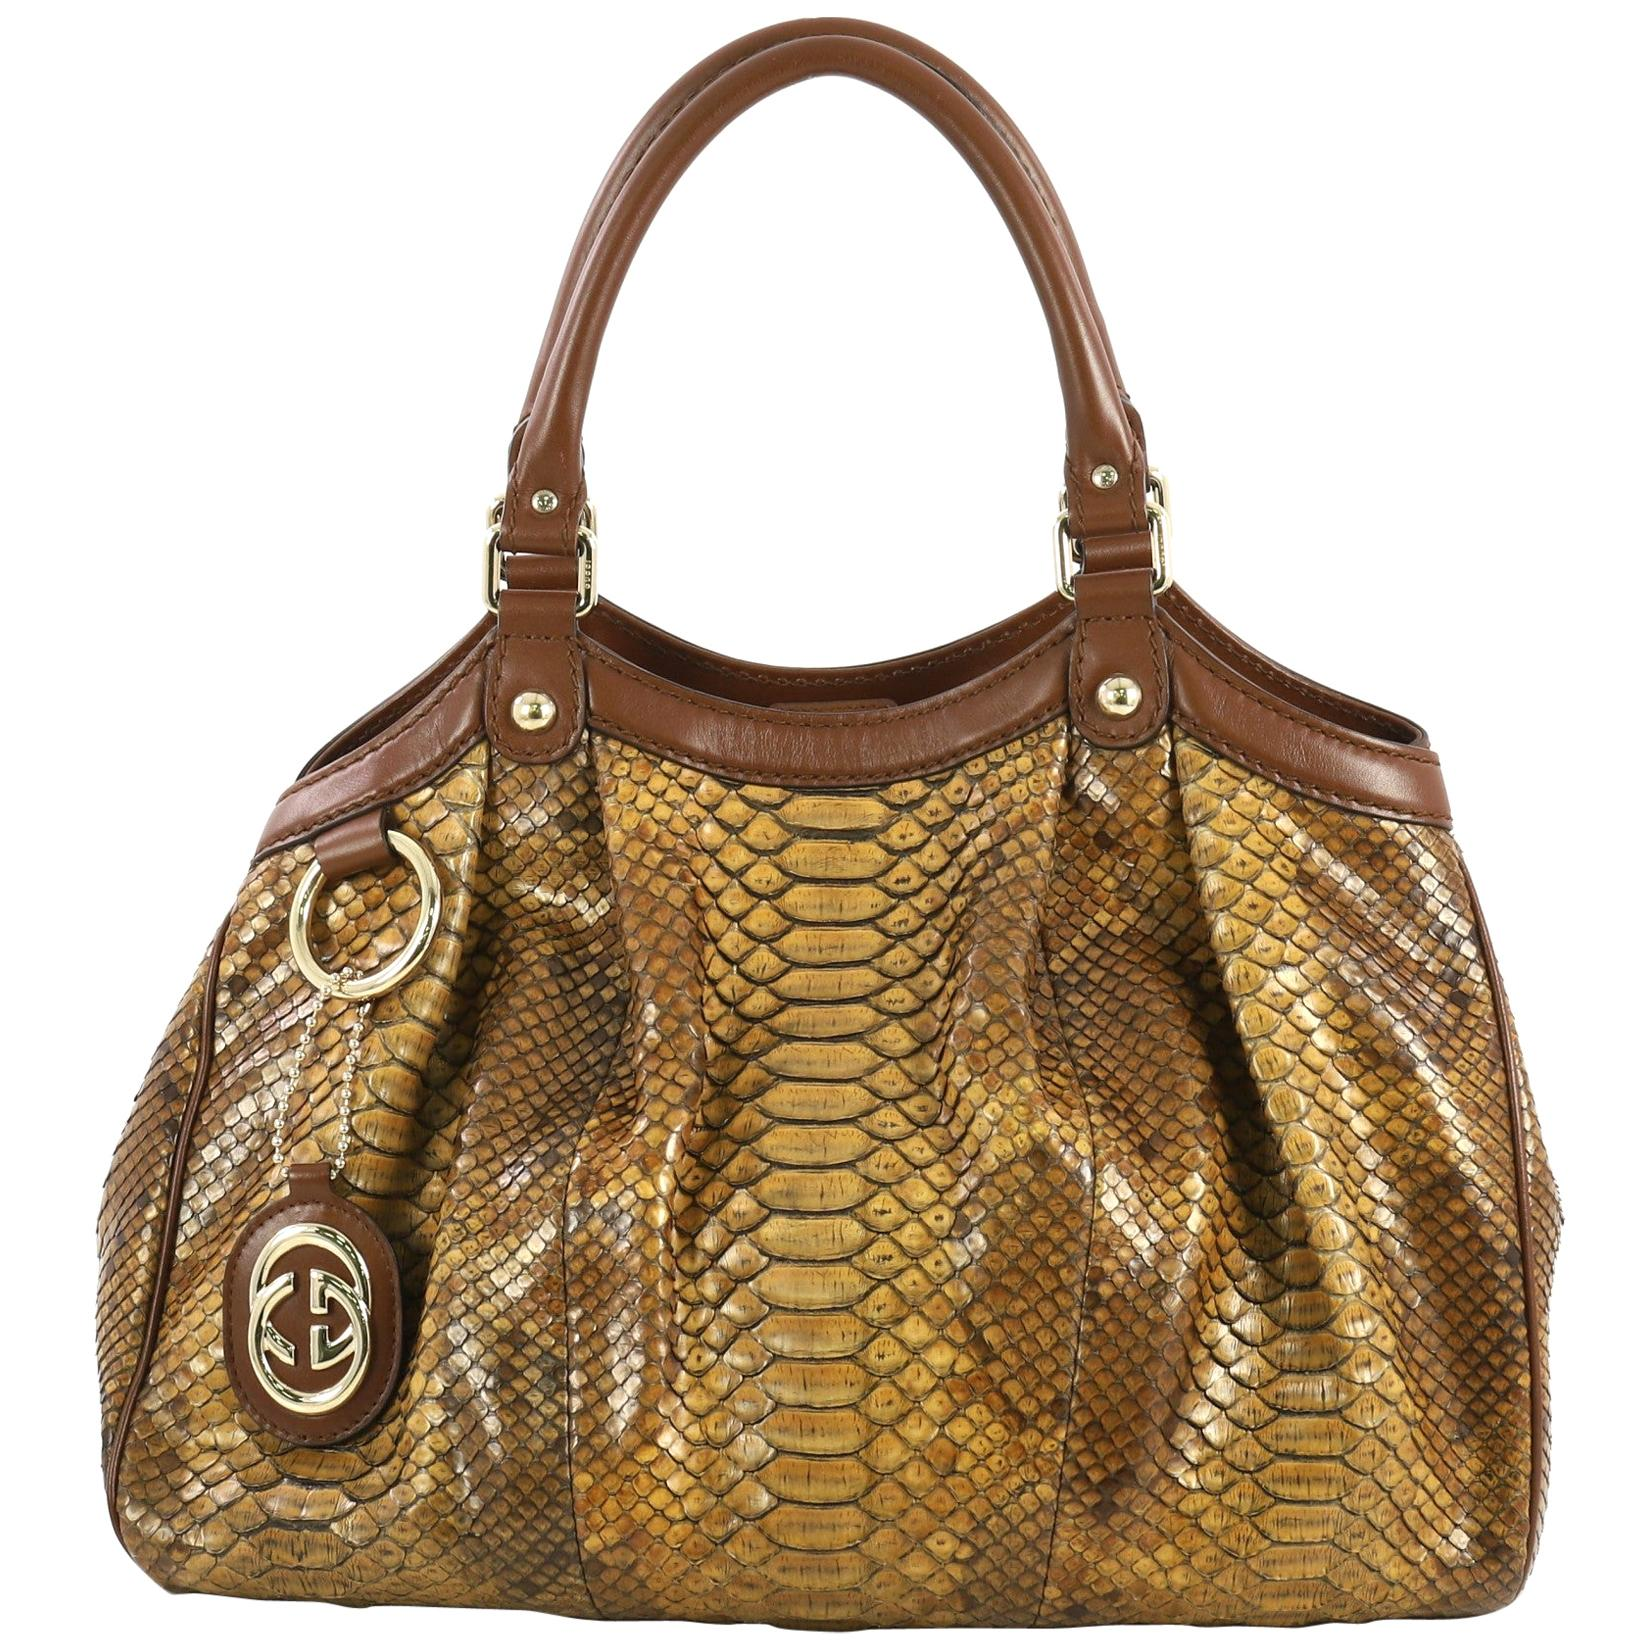 2bbe36fc7 Vintage Gucci: Clothing, Bags & More - 4,117 For Sale at 1stdibs